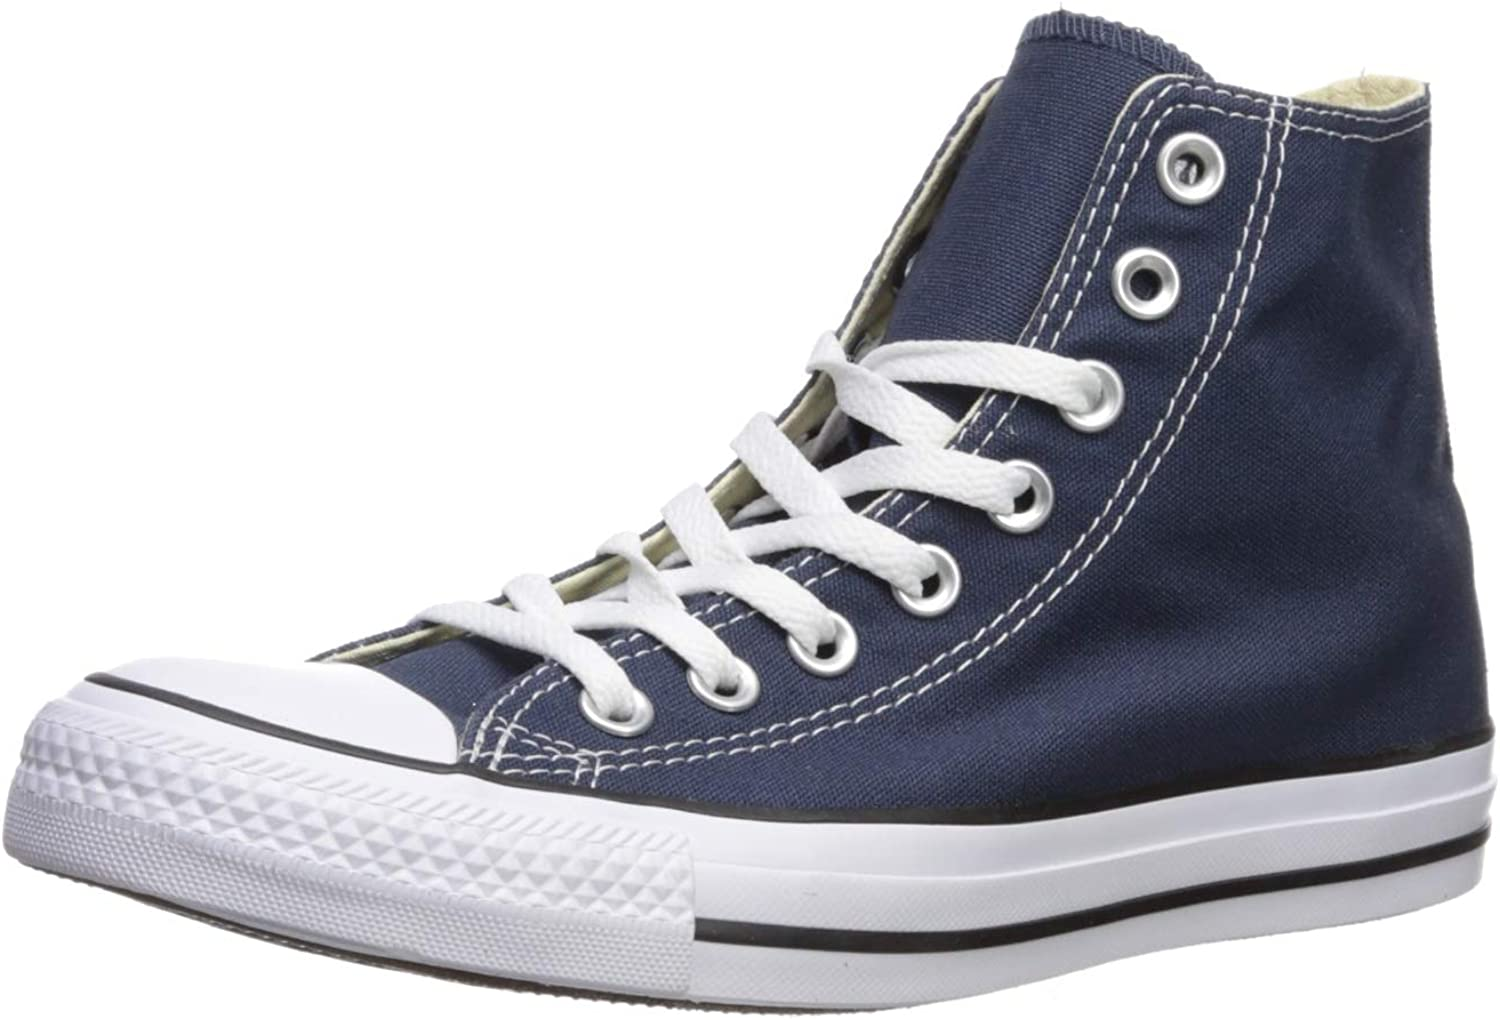 Converse Unisex Adults' All All Star Hi Sneakers